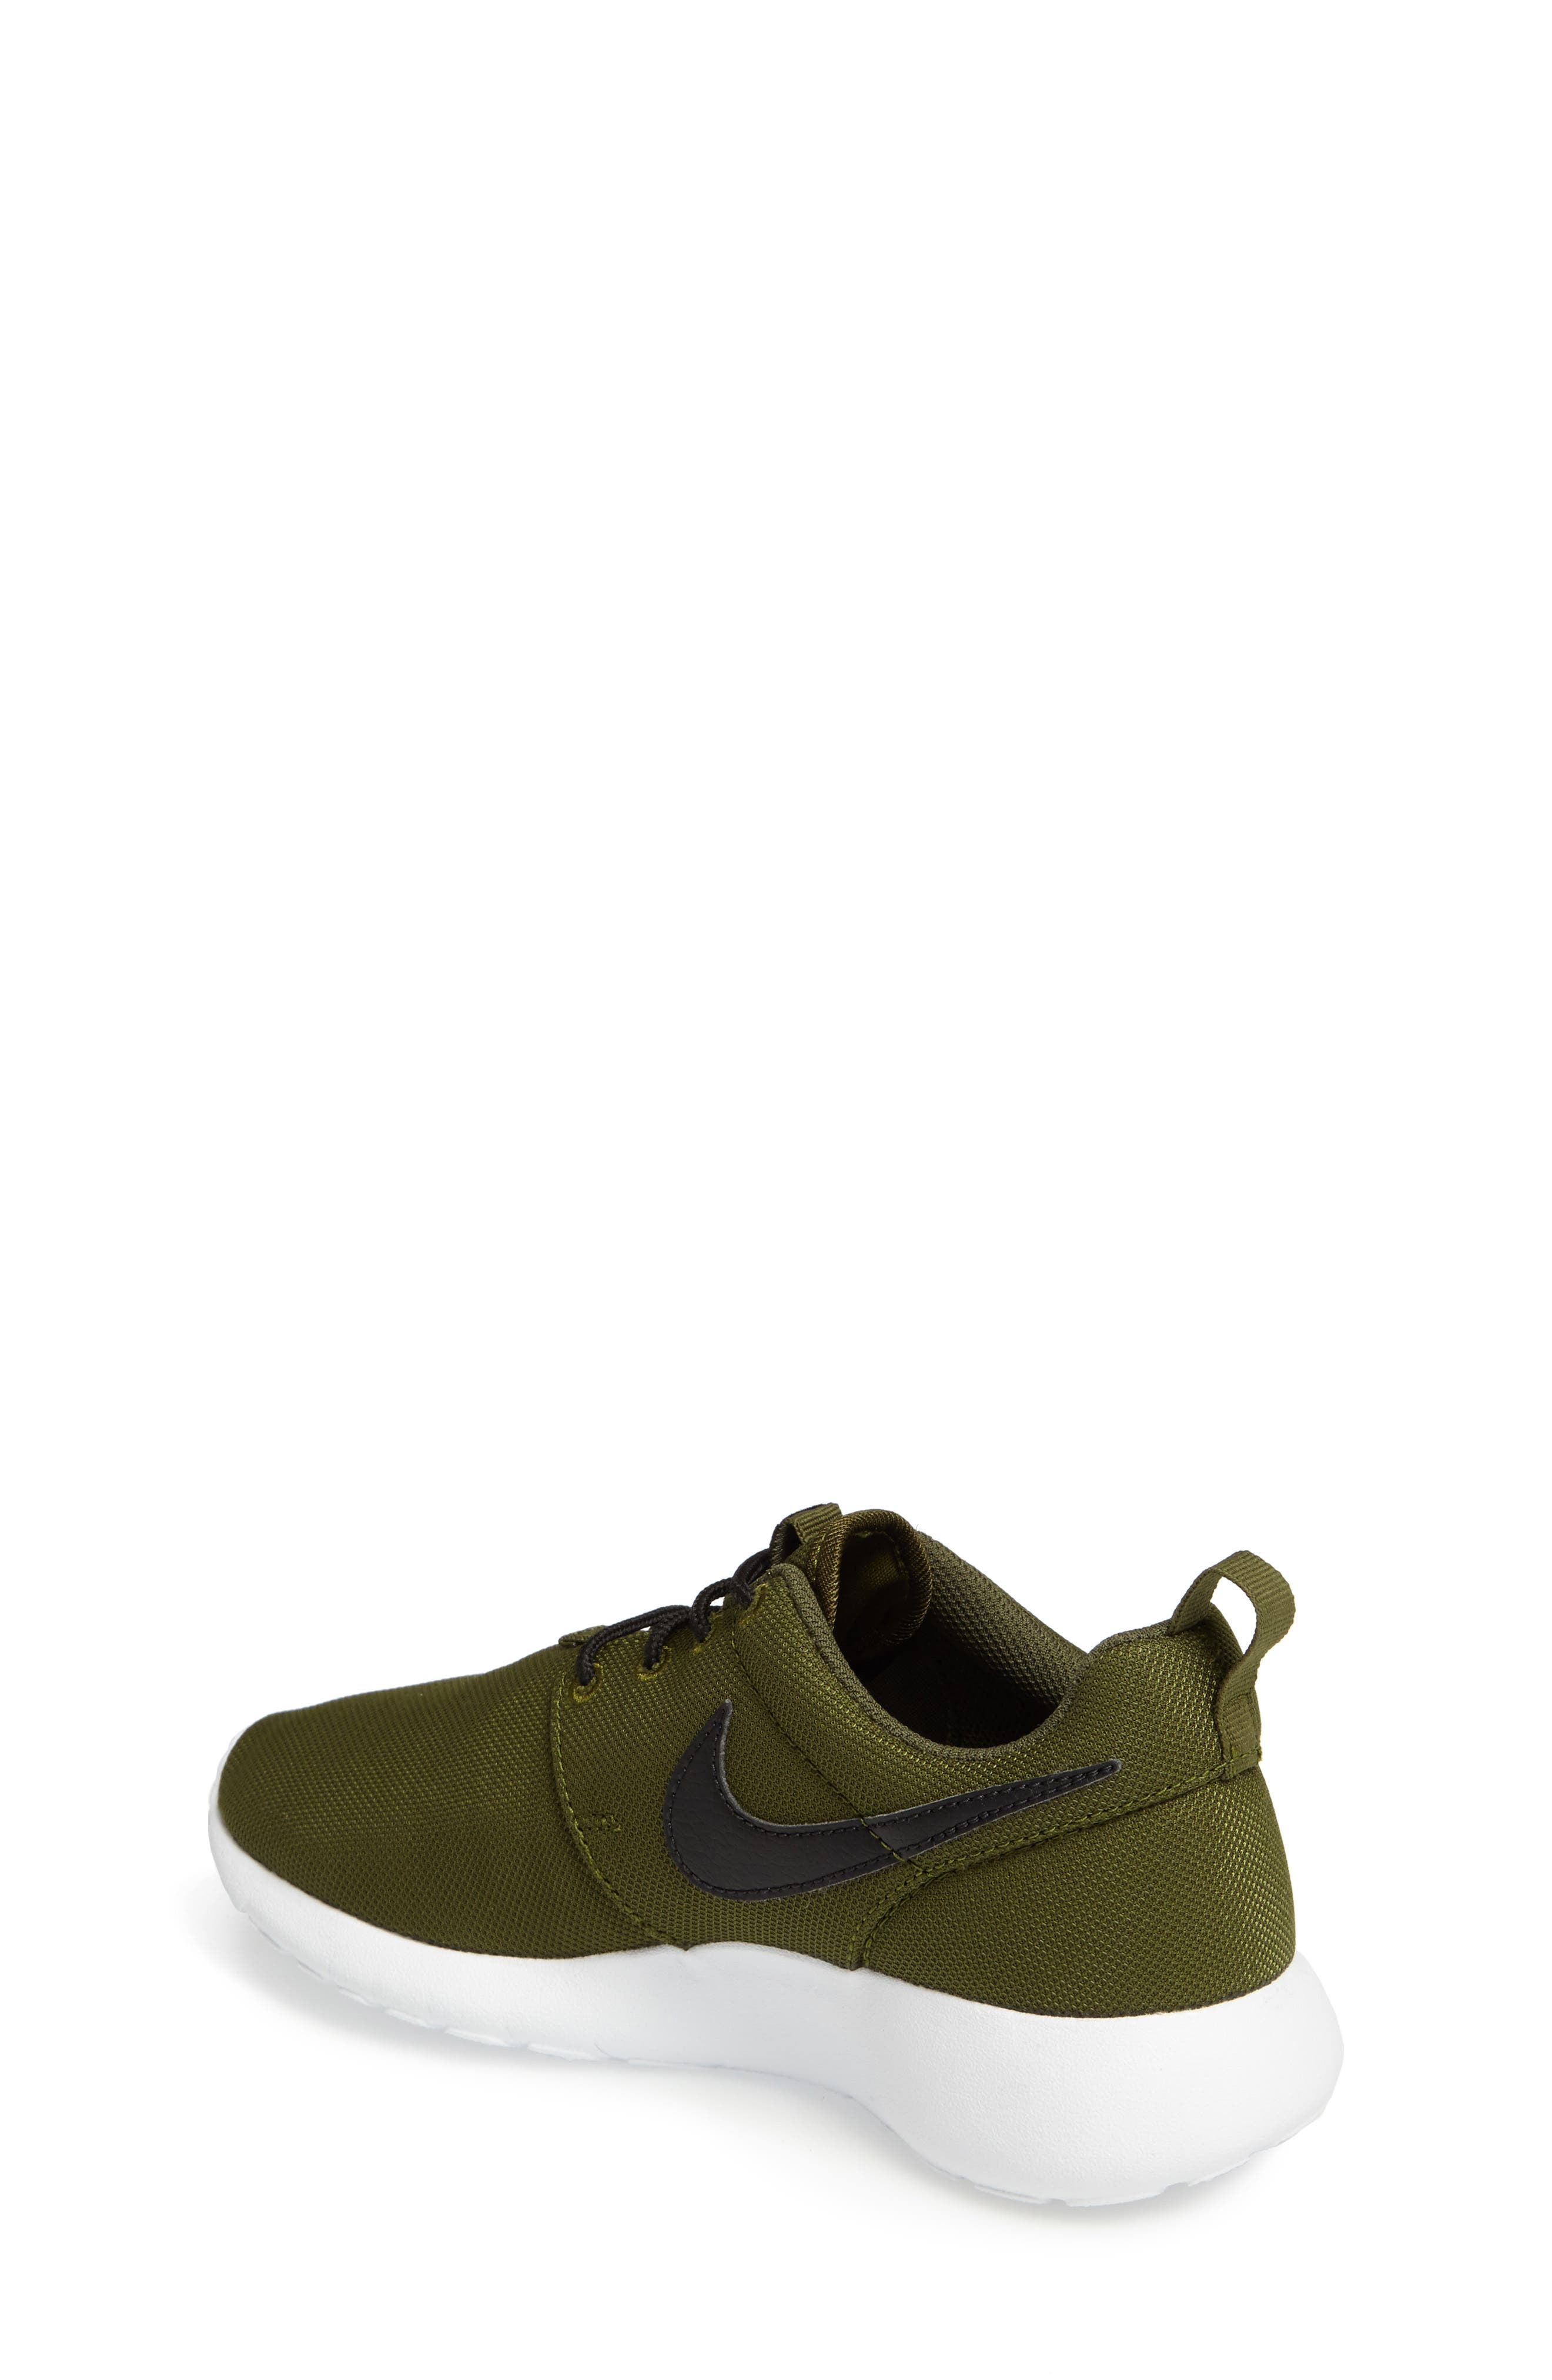 'Roshe Run' Sneaker,                             Alternate thumbnail 83, color,